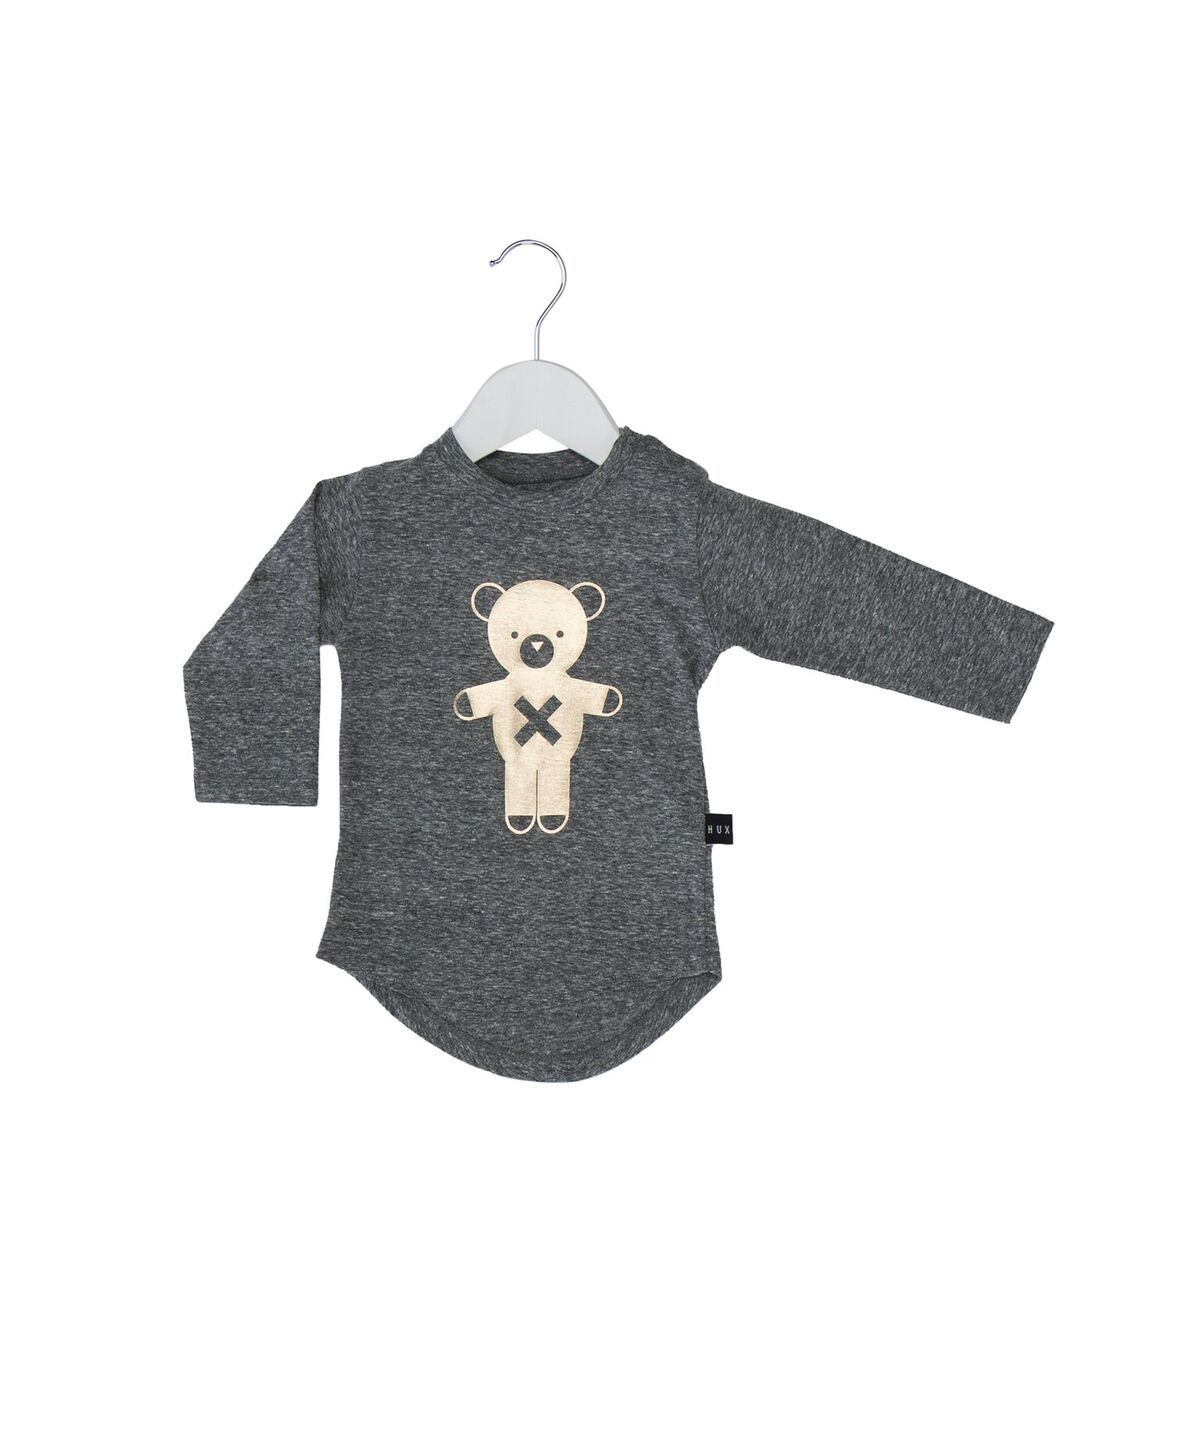 Huxbaby Soldier Bear Top (Baby)